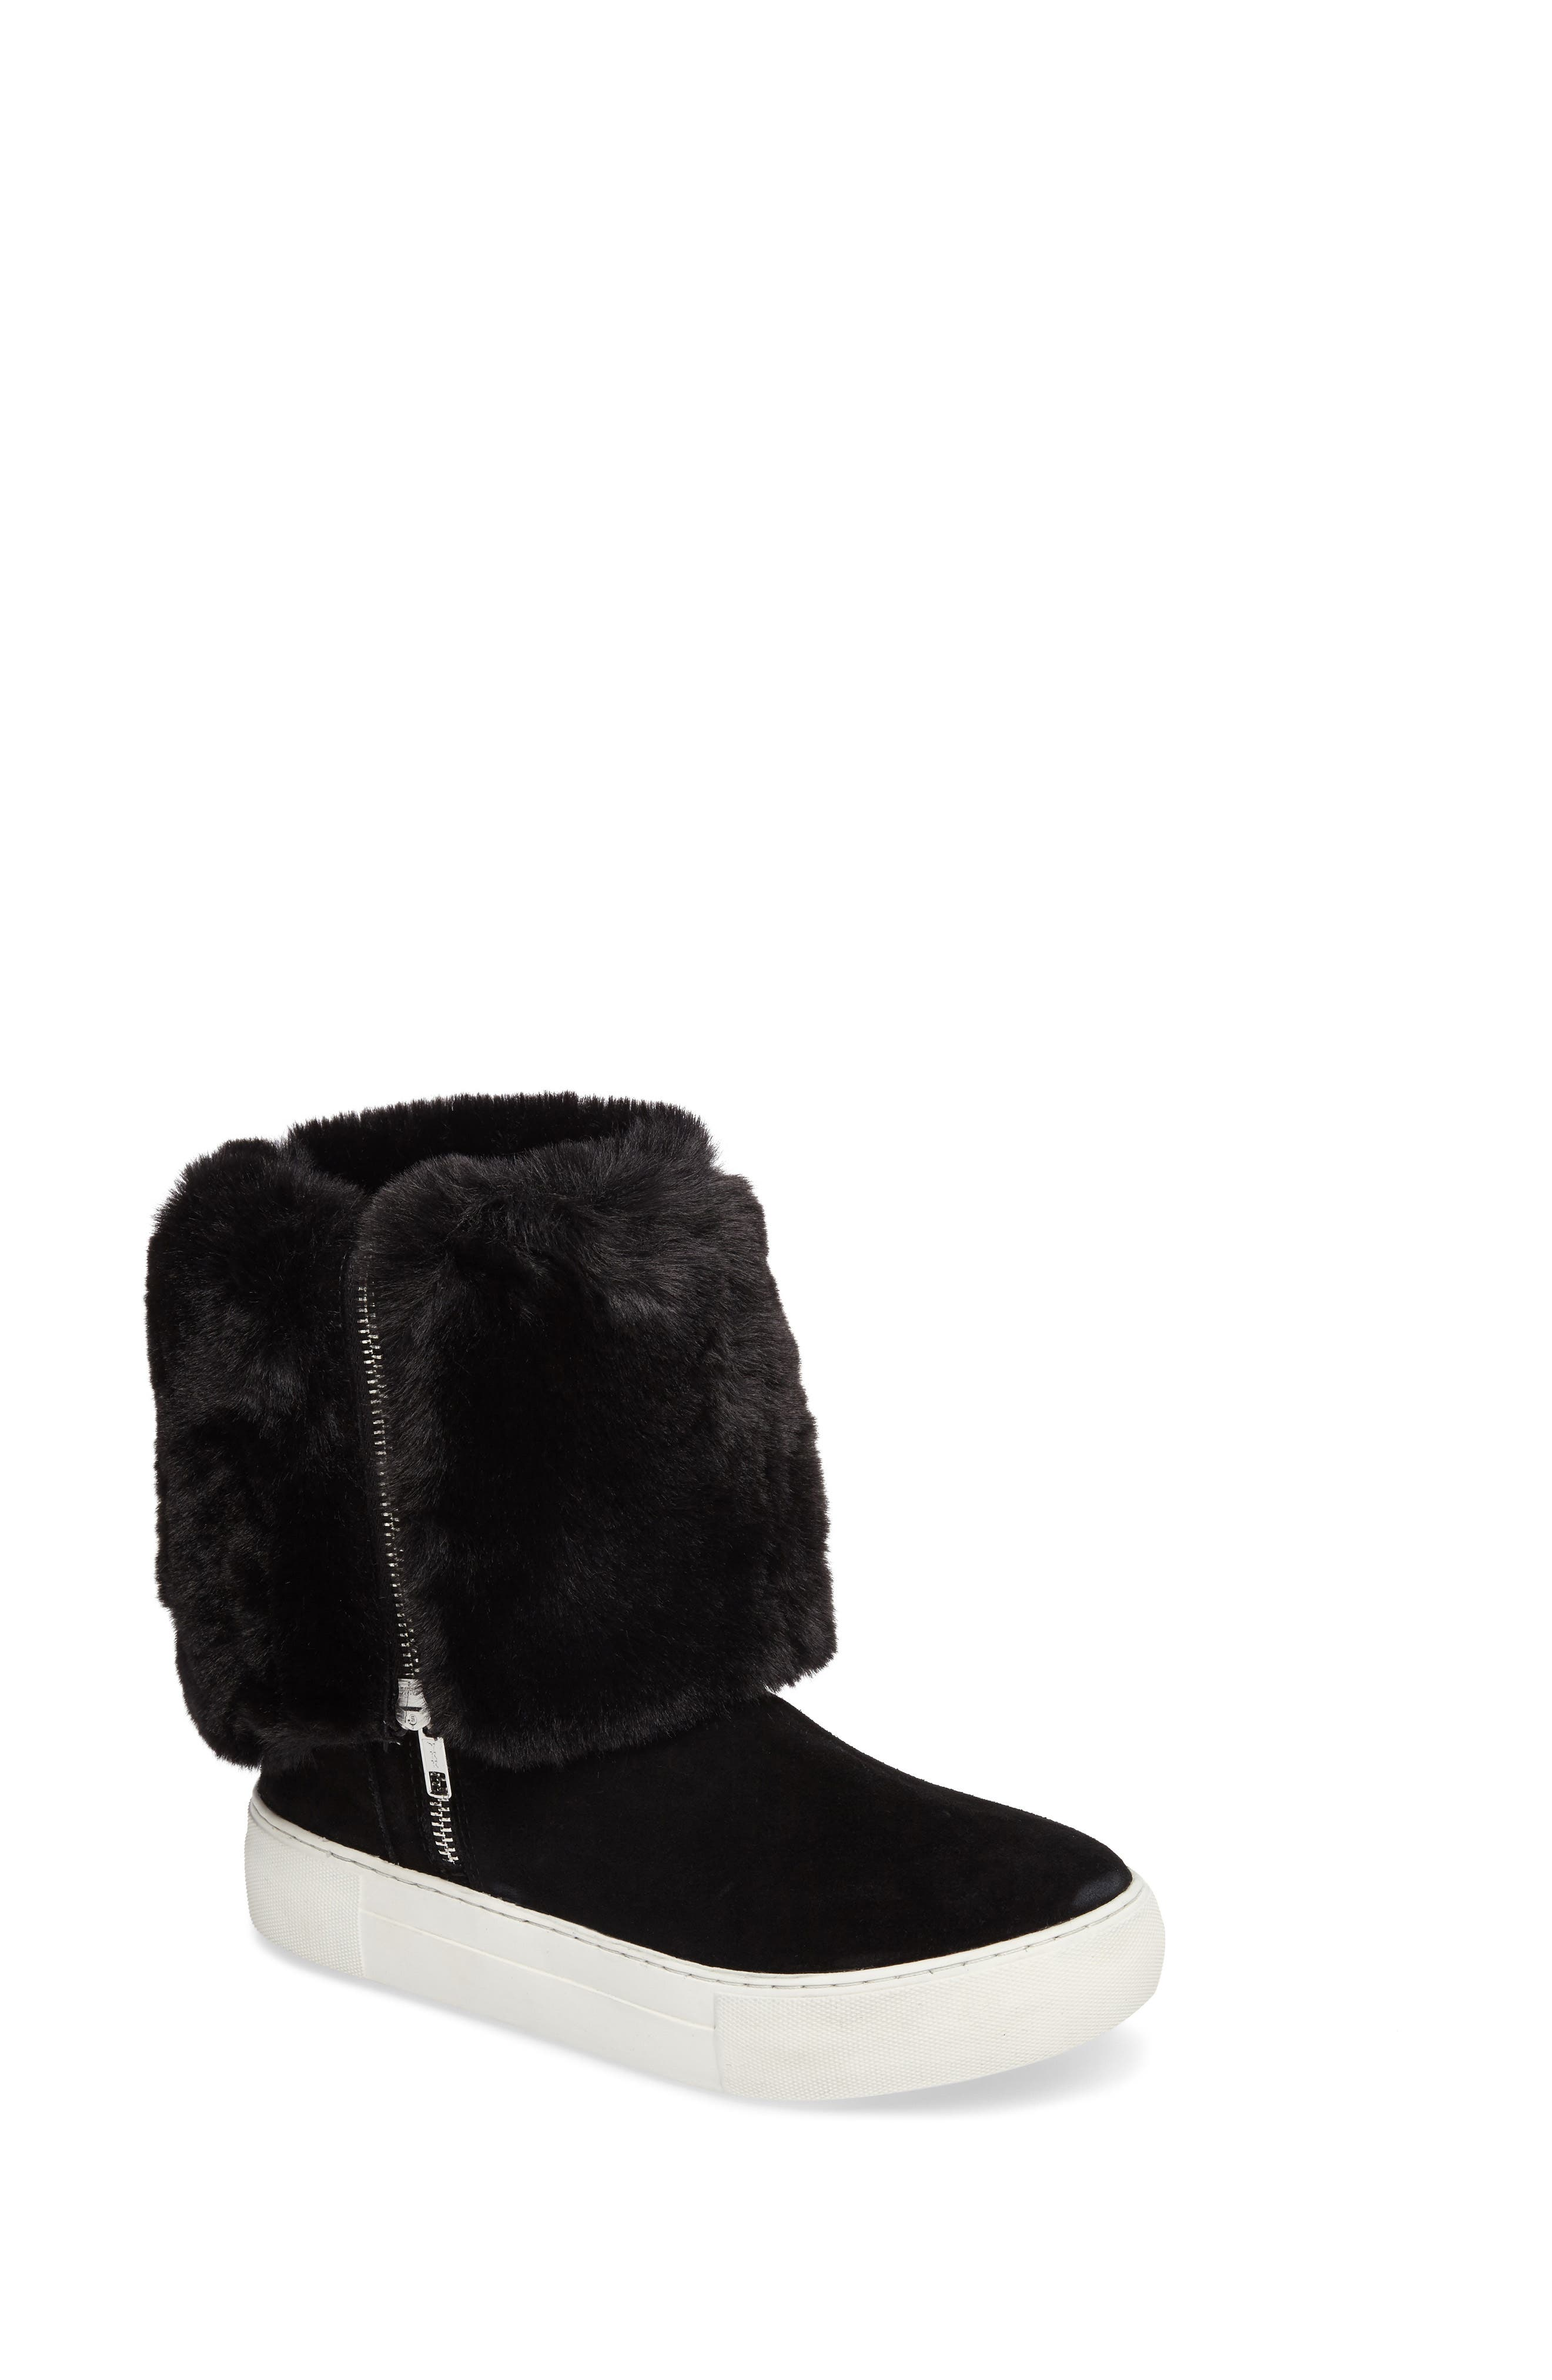 Jslides Apple Faux Shearling Boot, Black